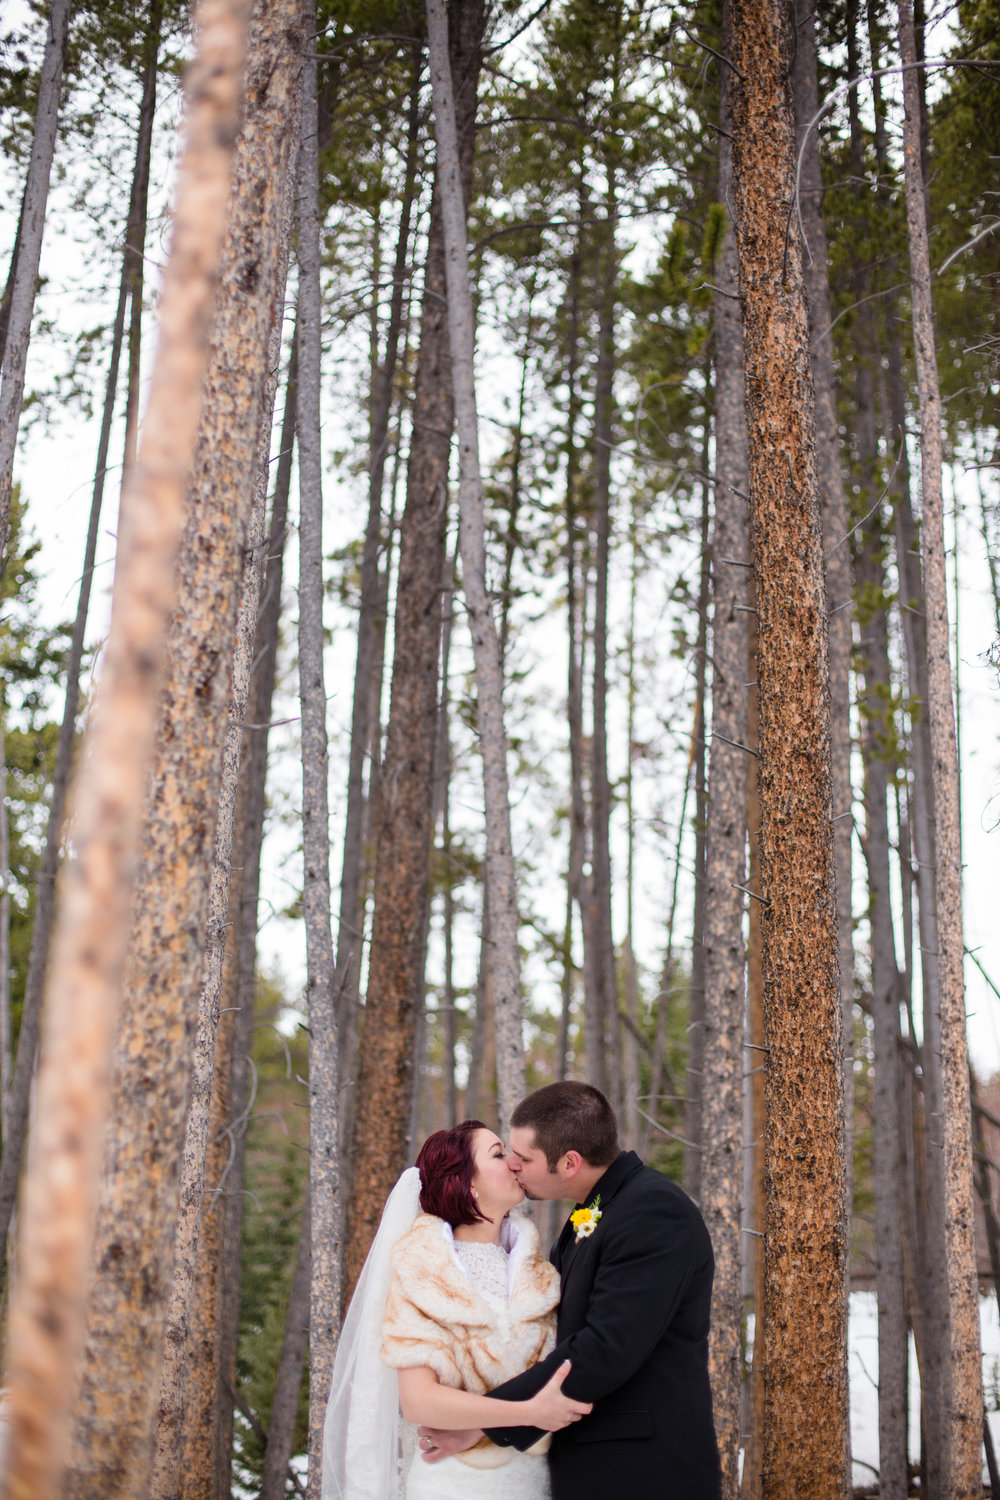 A Sevens Breckenridge Resort Colorado Winter Wedding -- Wedding Blog - The Overwhelmed Bride